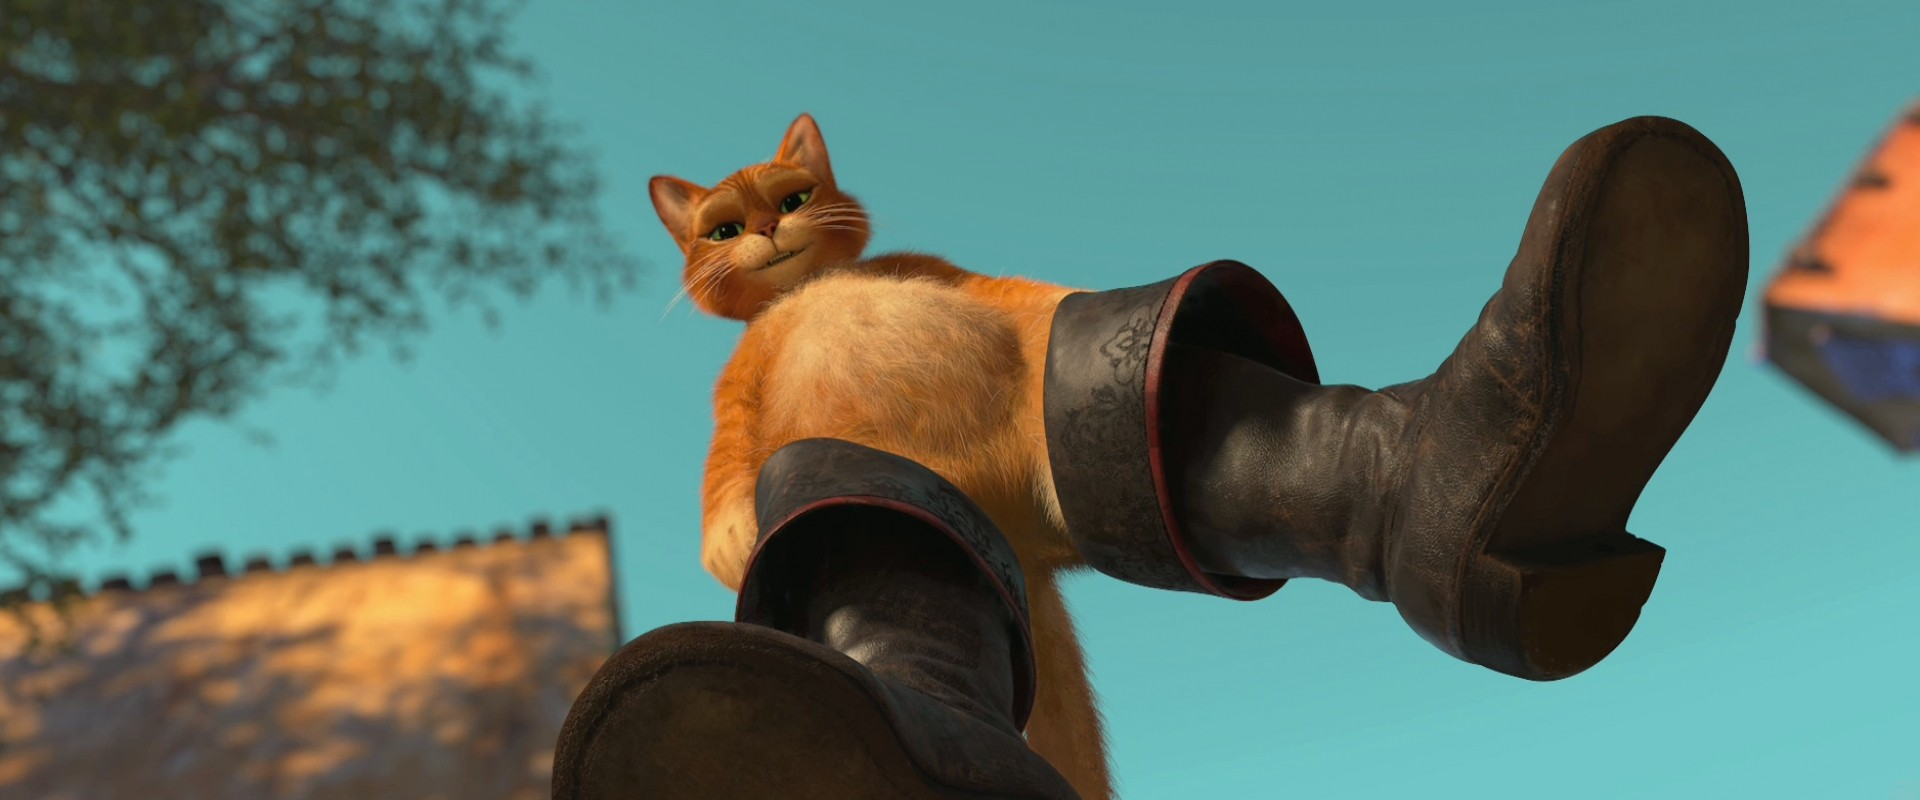 Puss in Boots (2011 film)